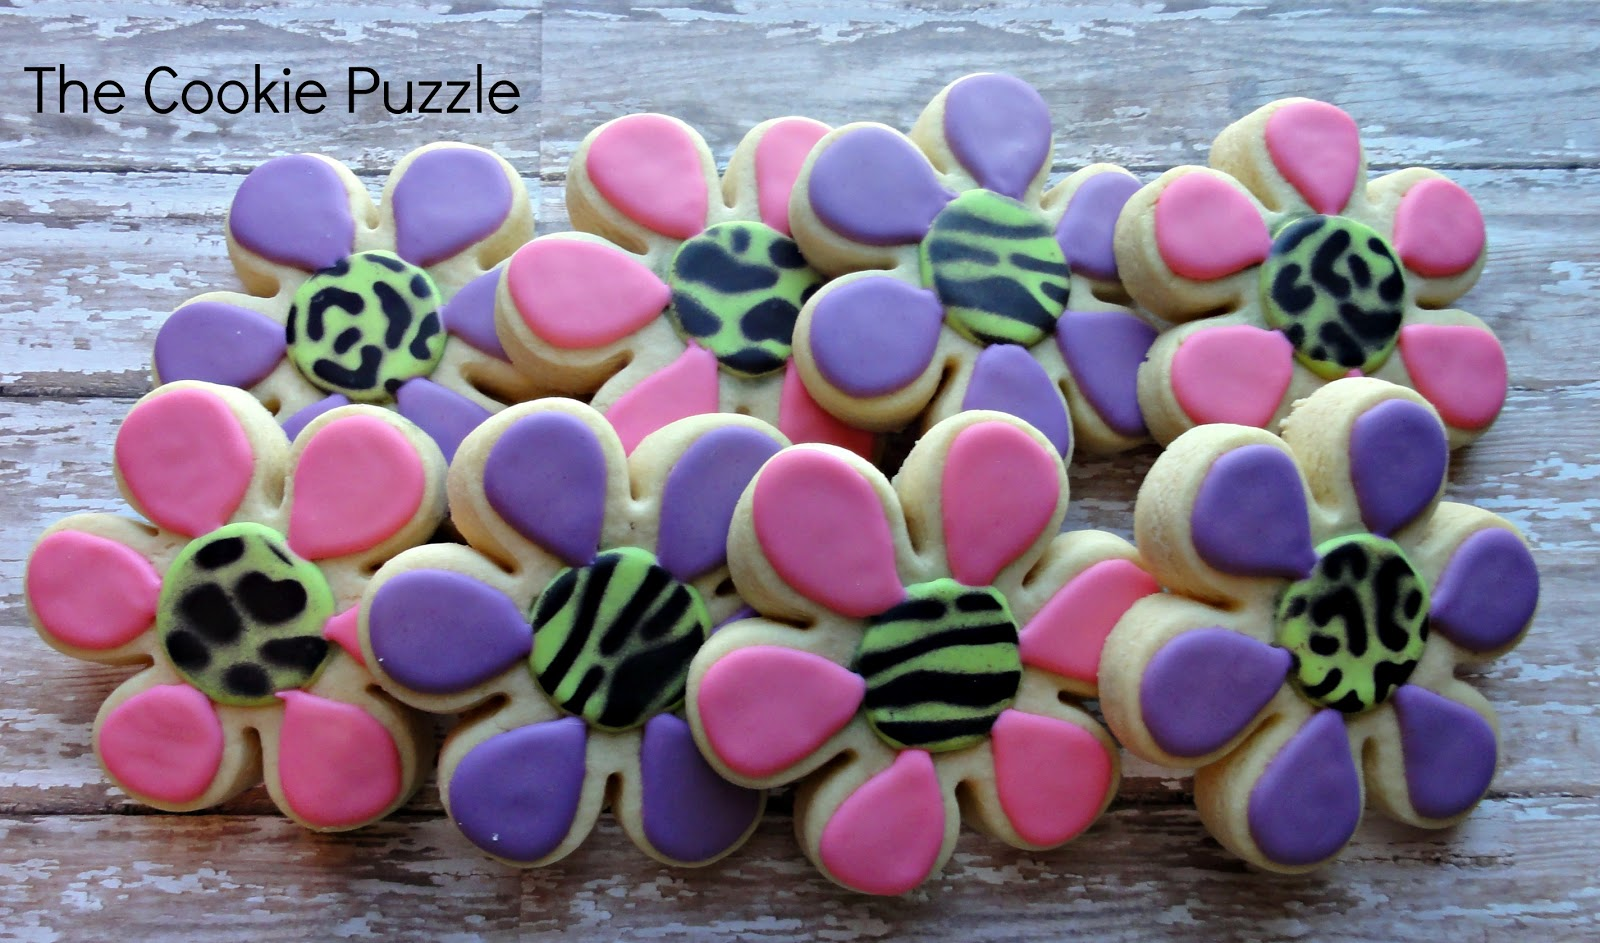 The Cookie Puzzle: Air Brushed Animal Print Cookies